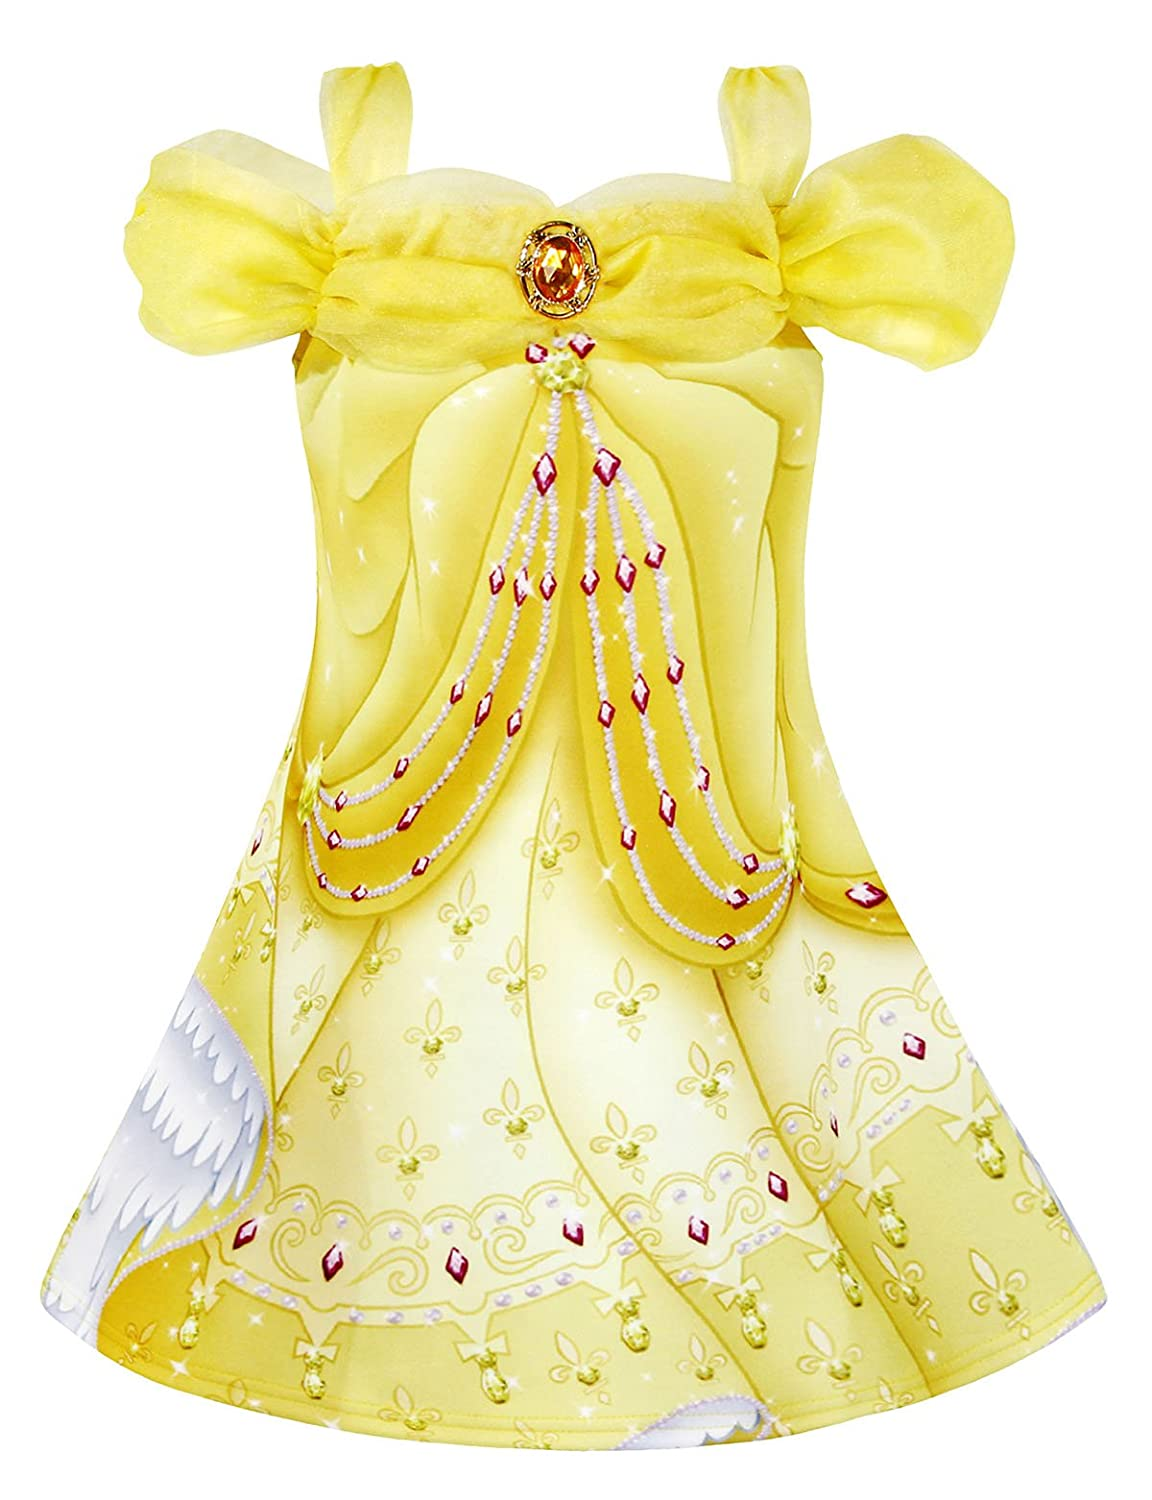 AmzBarley Princess Belle Costume for Girls Fancy Party Deluxe Beauty Kids Christmas Dress up Outfits